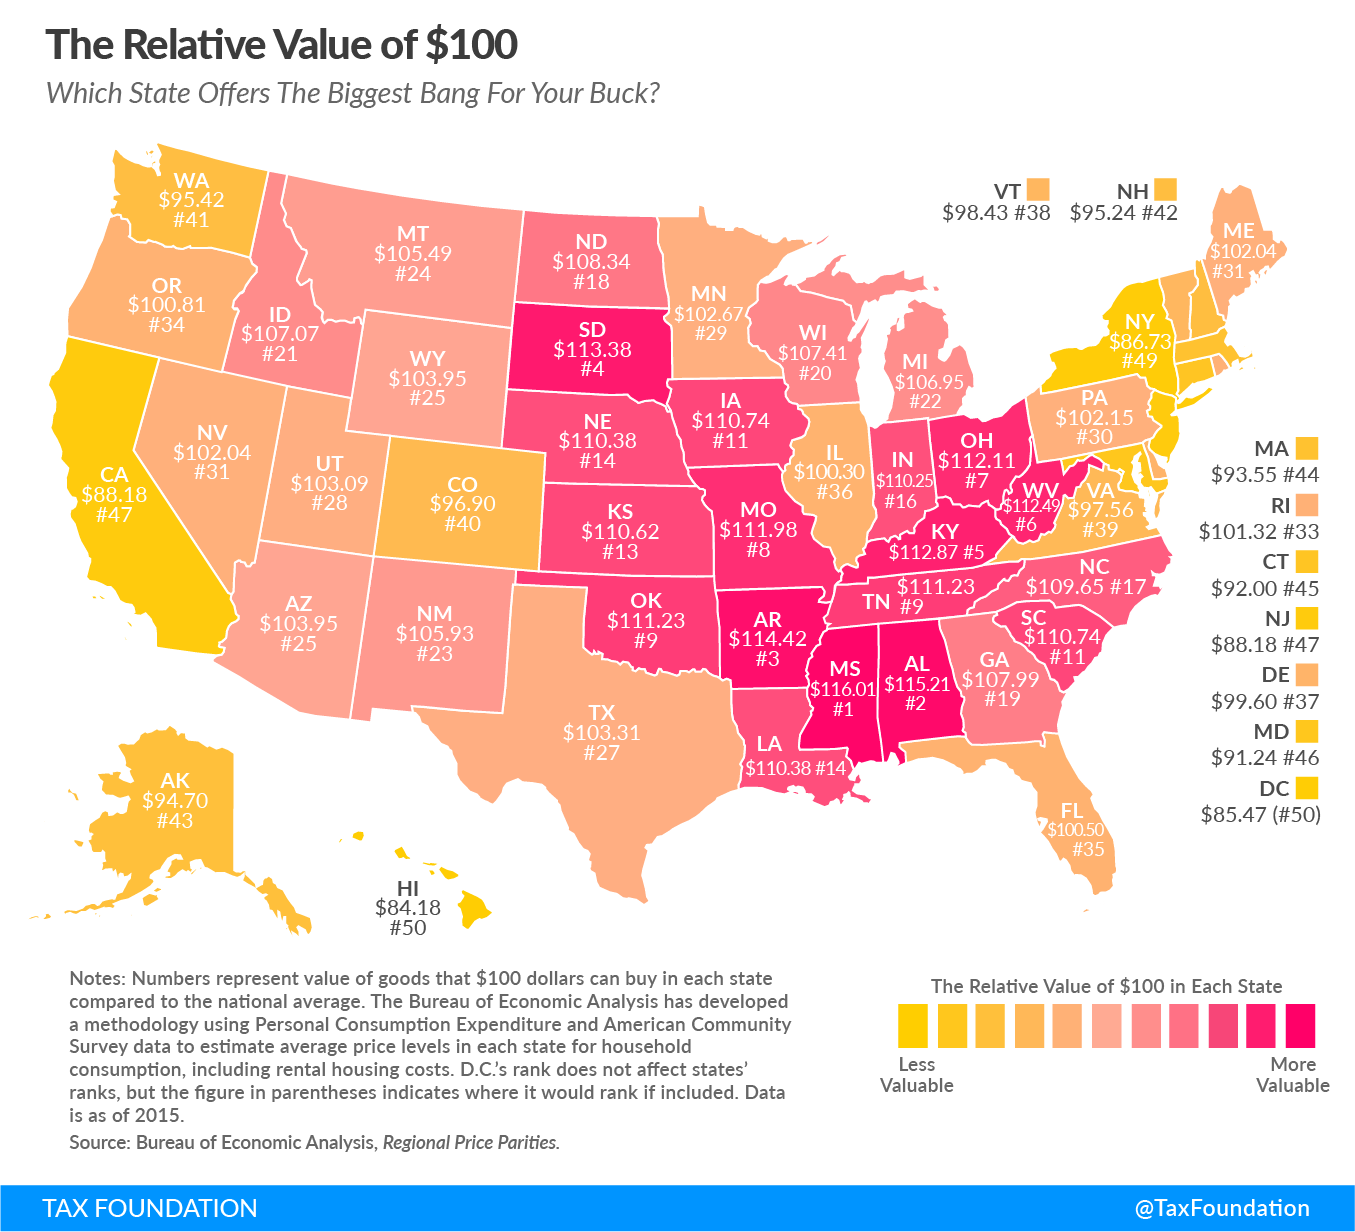 These Maps Show Where a Dollar Goes Furthest in the U.S.